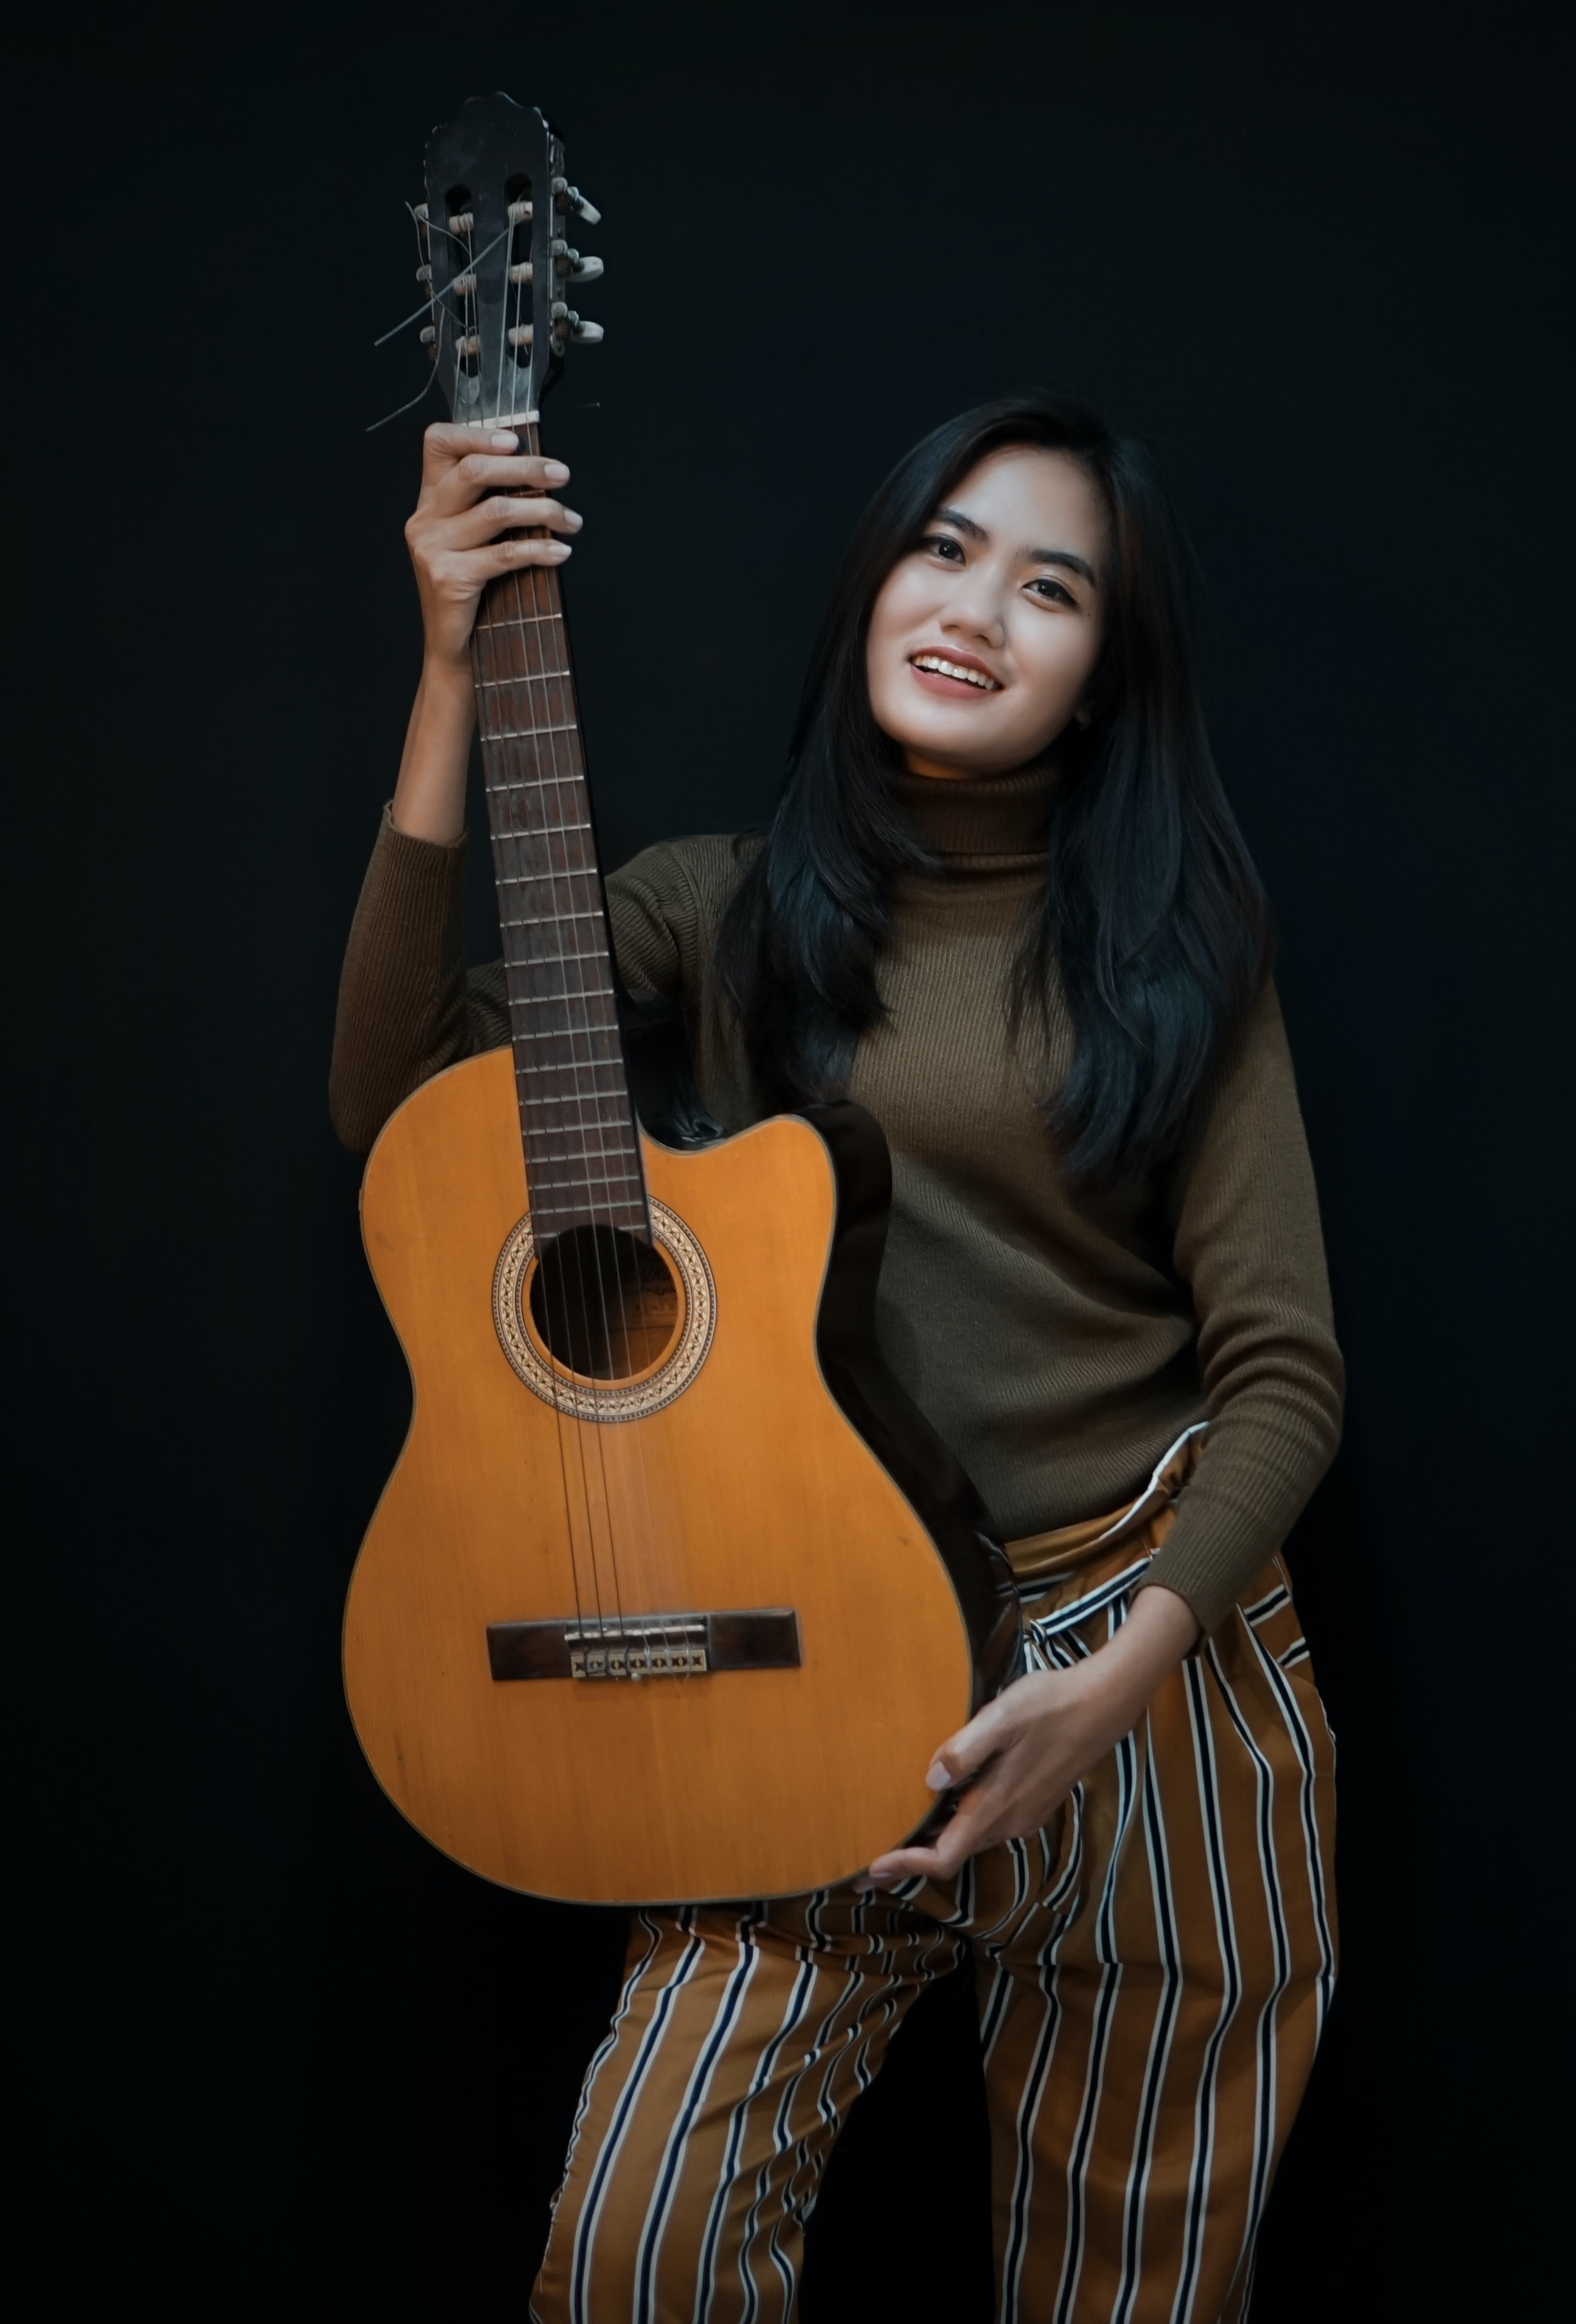 smiling woman while holding cut-away acoustic guitar